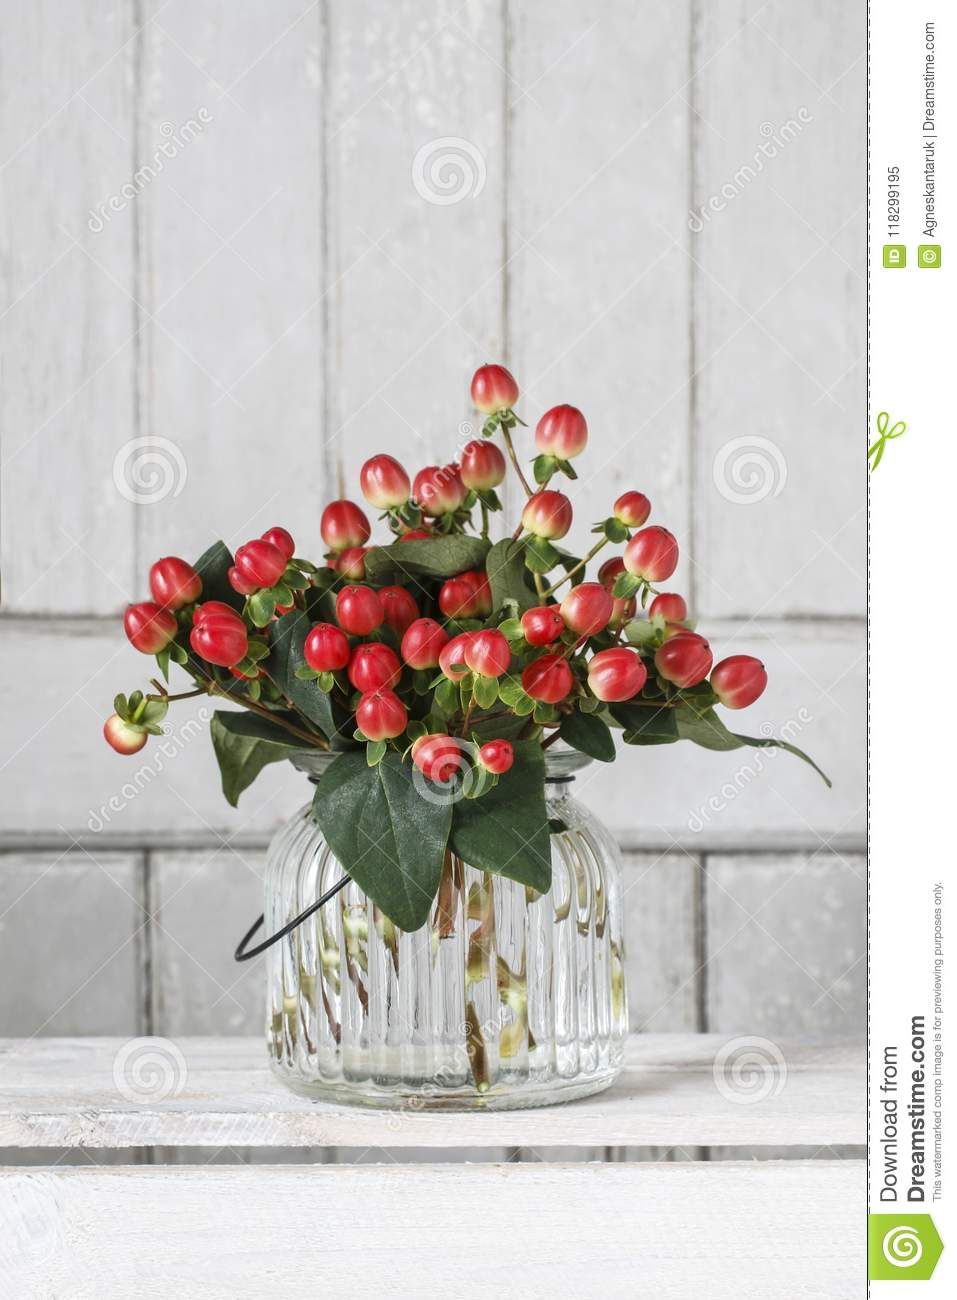 Bouquet Of Hypericum Plants Twigs With Red Berries Stock Image Image Of Mood Blank 118299195